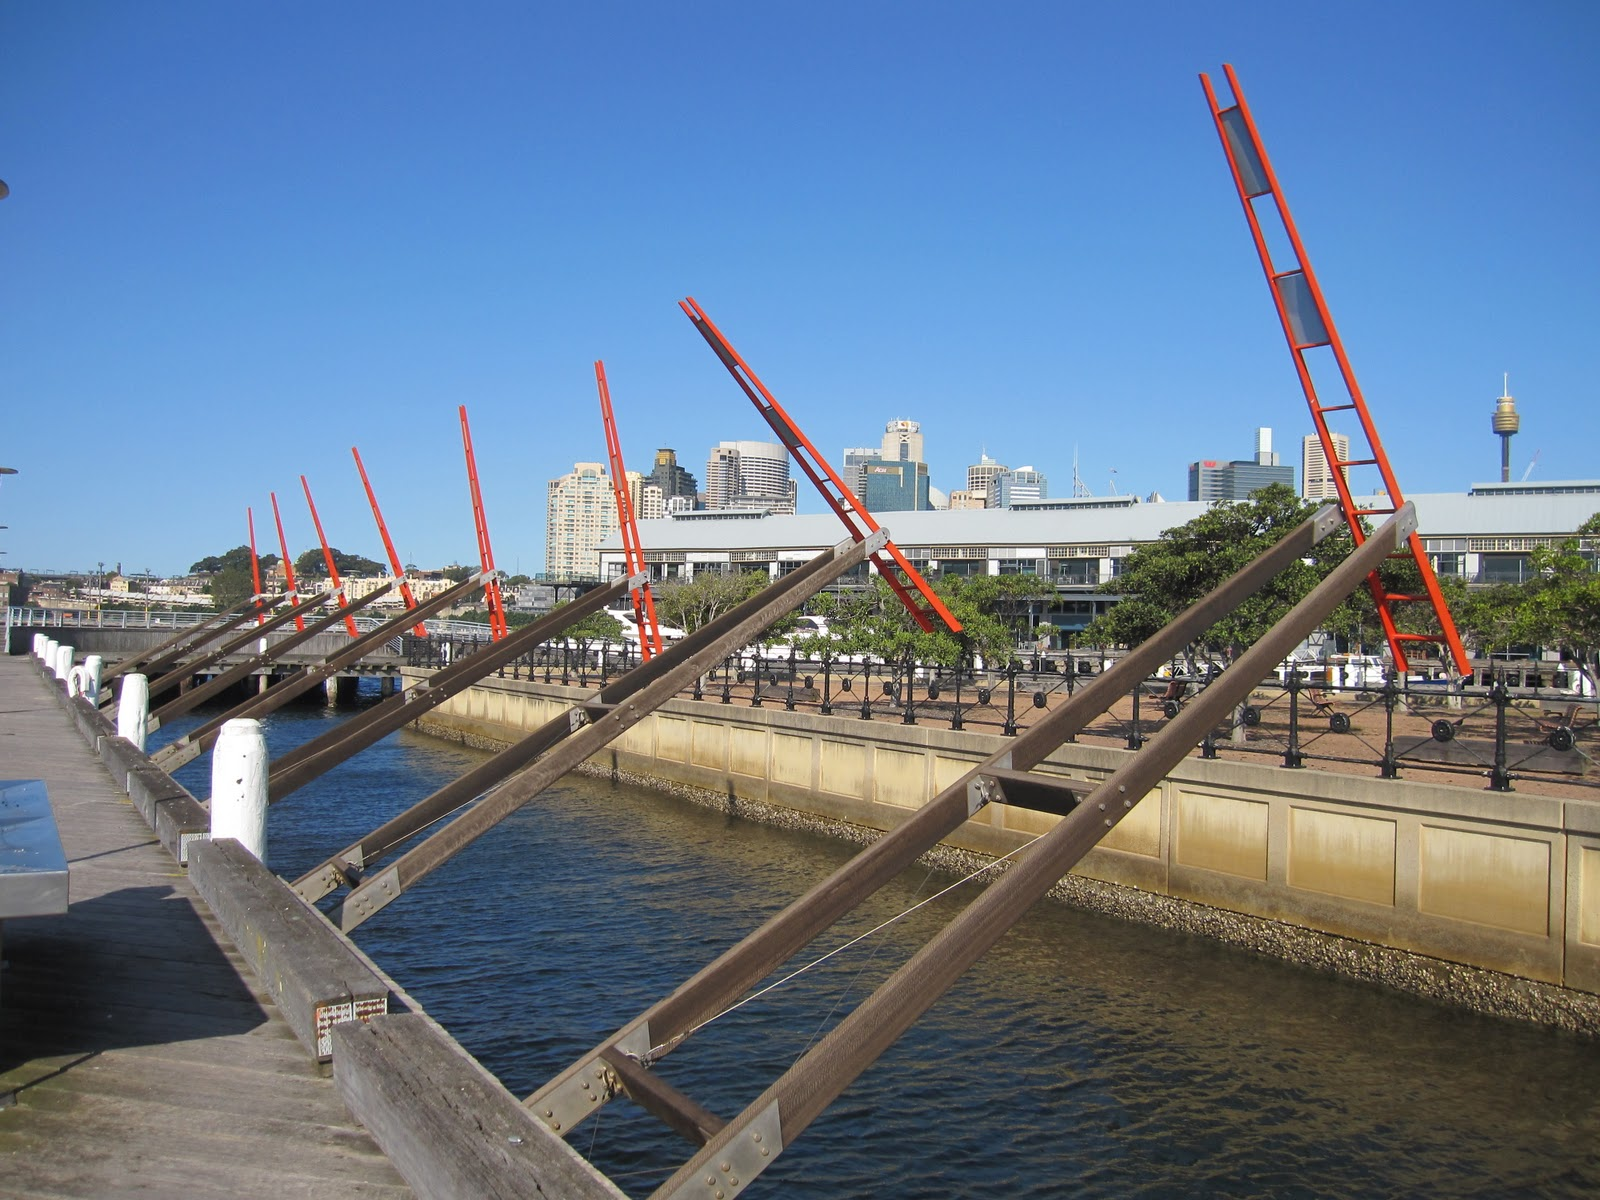 Sydney city and suburbs pyrmont tied to tide tied to tide is an artwork located on the waterfront of pyrmont point park in the inner west suburb of pyrmont it is located along the boardwalk on nvjuhfo Gallery